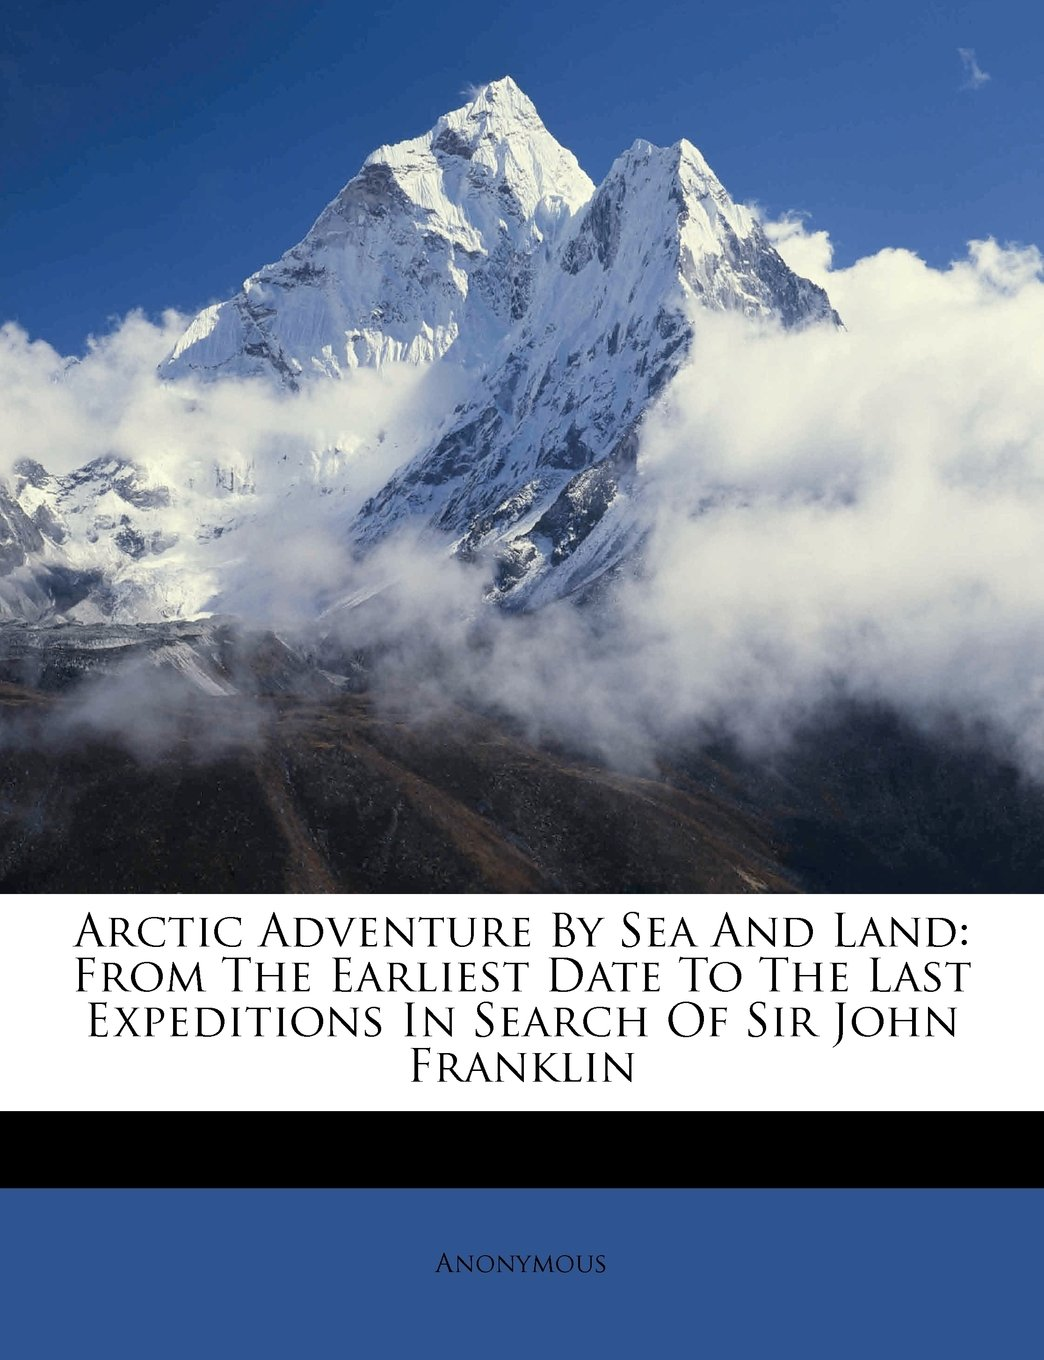 Arctic Adventure By Sea And Land: From The Earliest Date To The Last Expeditions In Search Of Sir John Franklin ebook